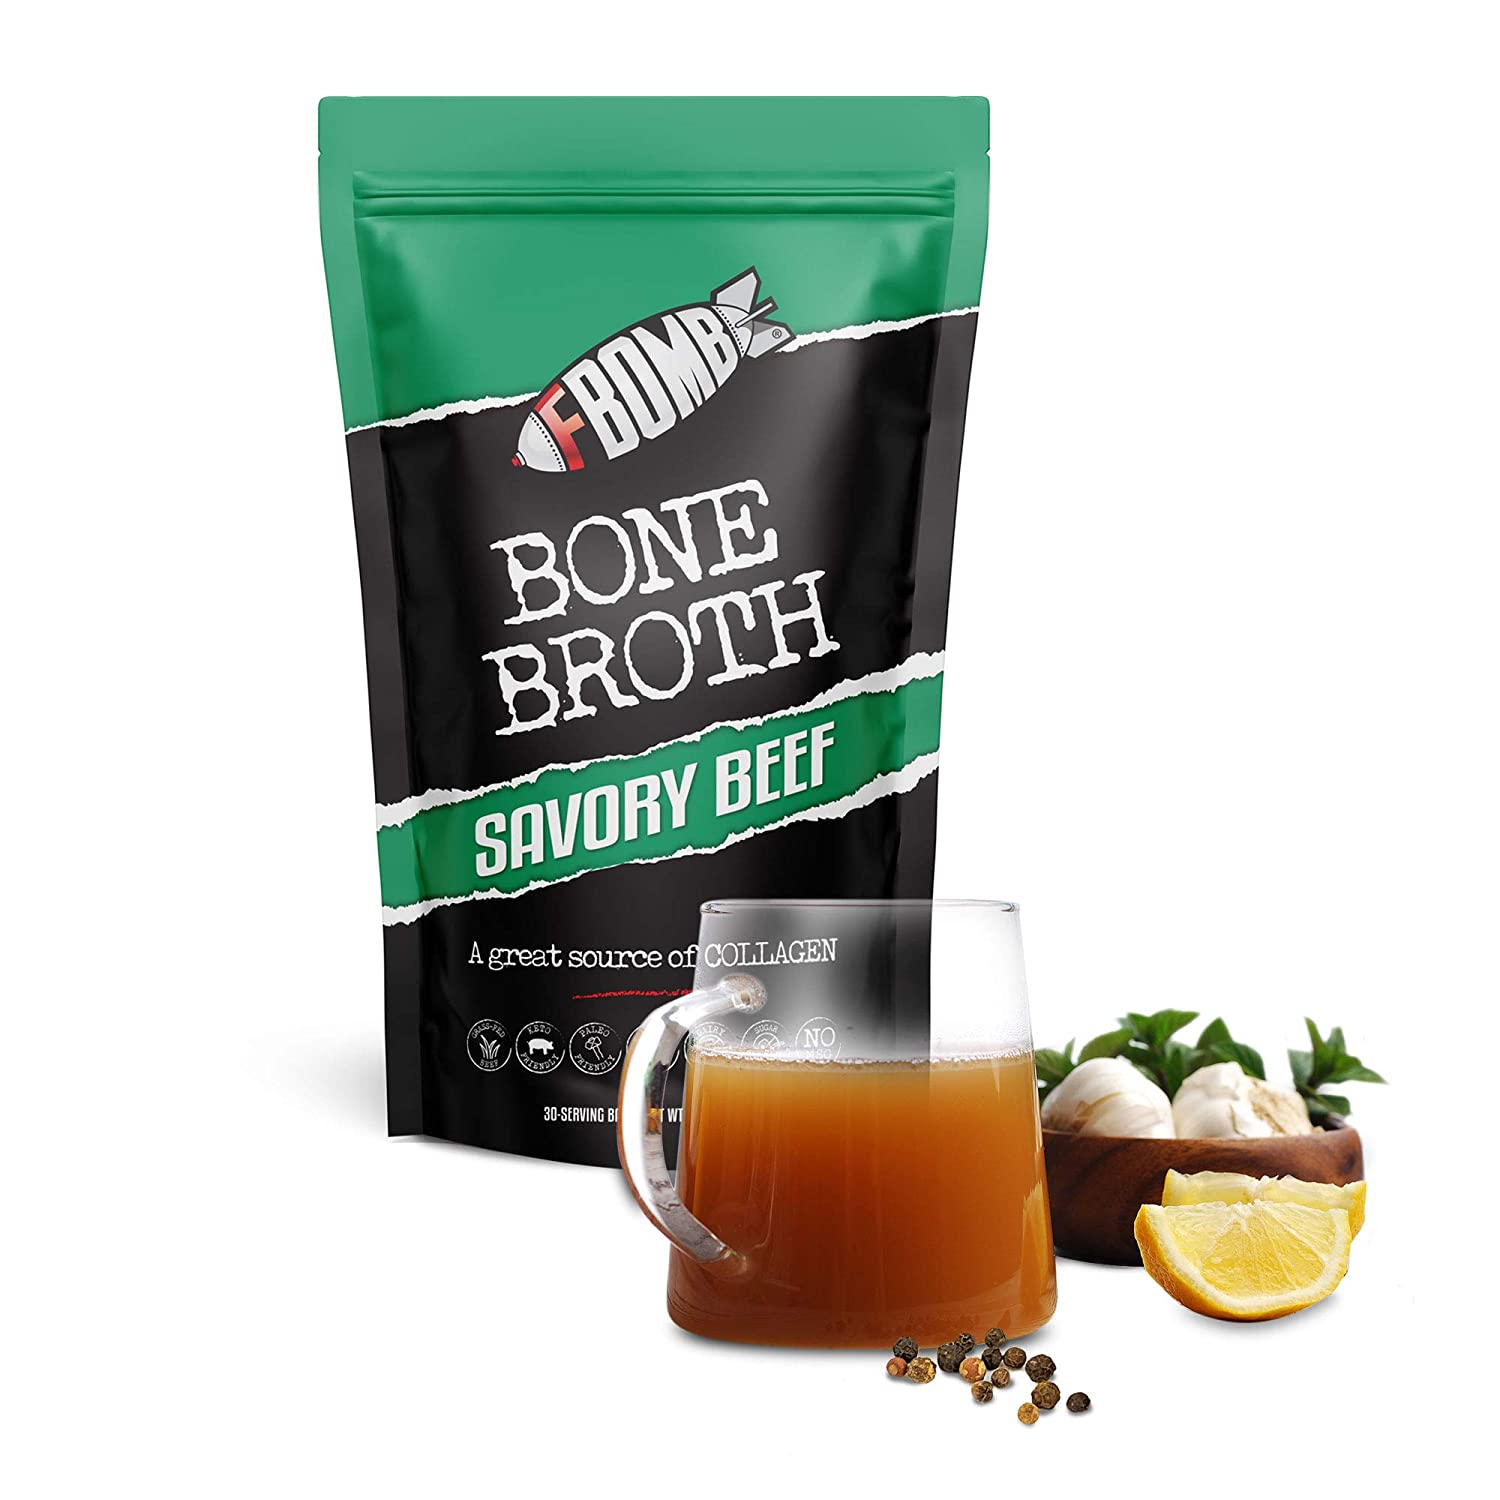 FBOMB Beef Bone Broth Protein Powder - 30 Servings: Keto & Paleo Friendly Soup, Fortified with Electrolytes & Collagen | Grass-Fed, Pasture Raised Beef | Dairy-Free, Gluten Free, Non-GMO | Savory